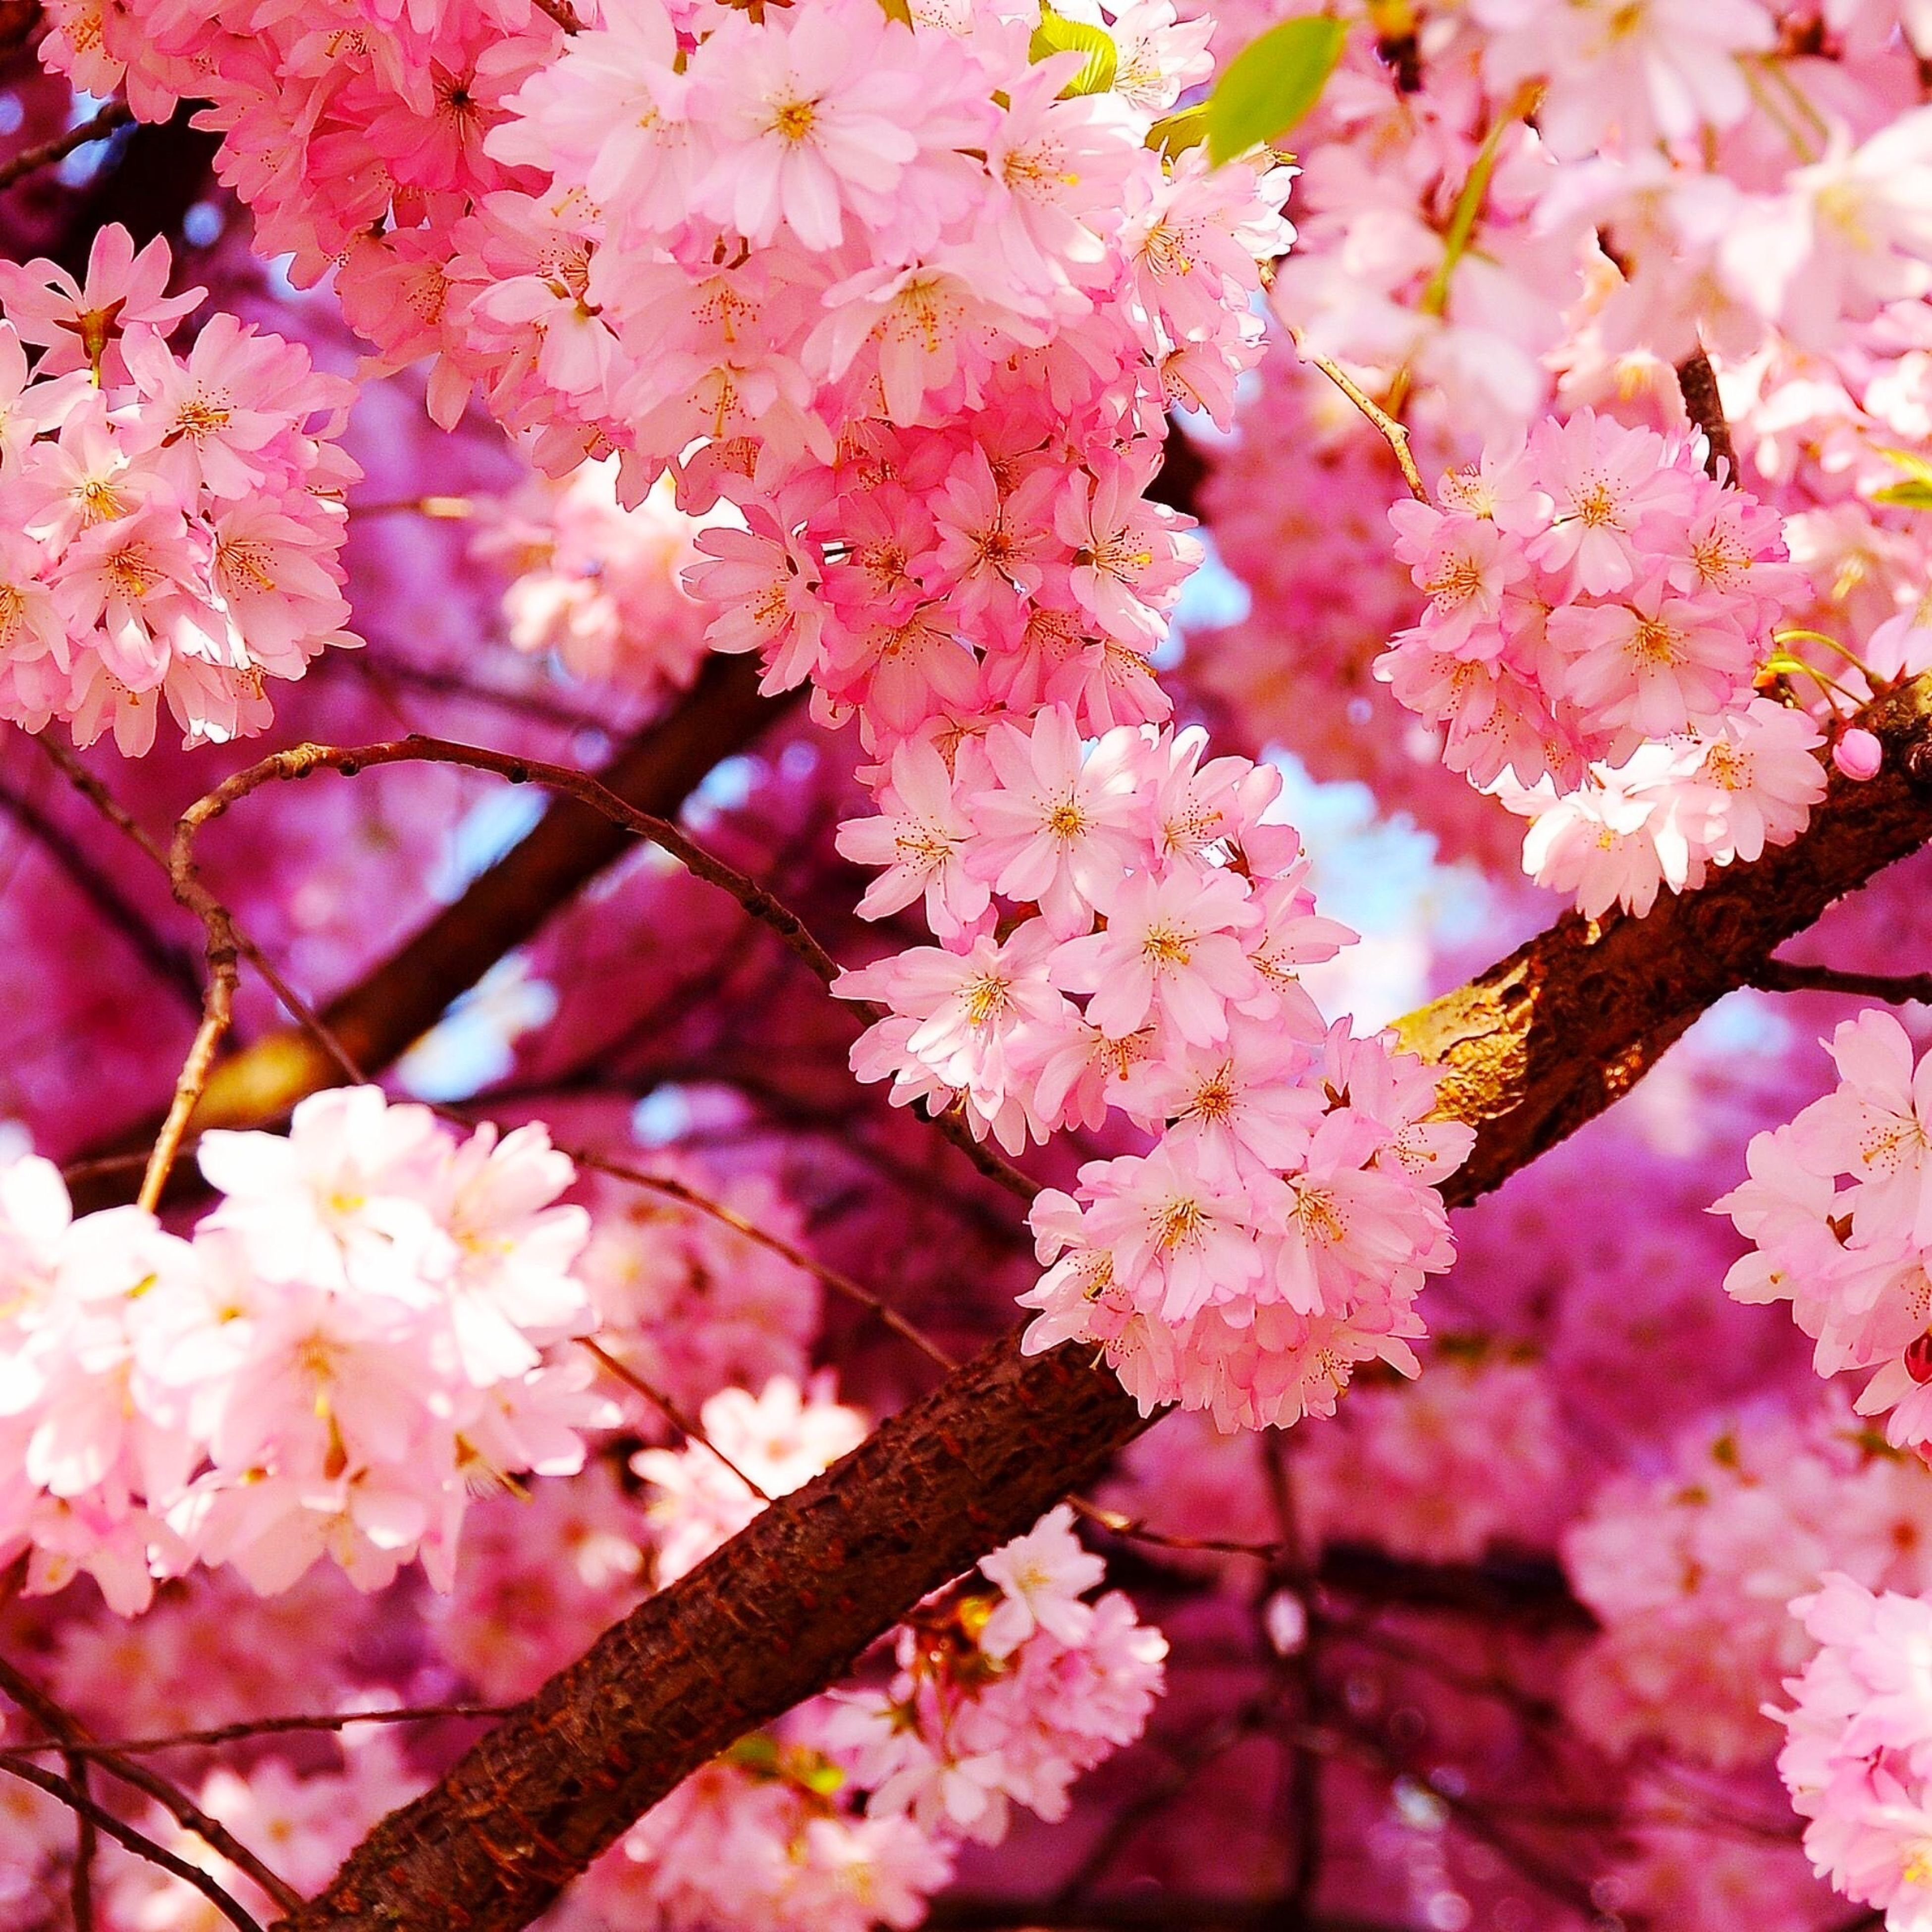 flower, freshness, branch, fragility, cherry blossom, tree, beauty in nature, blossom, growth, pink color, petal, cherry tree, nature, low angle view, in bloom, springtime, fruit tree, blooming, close-up, pink